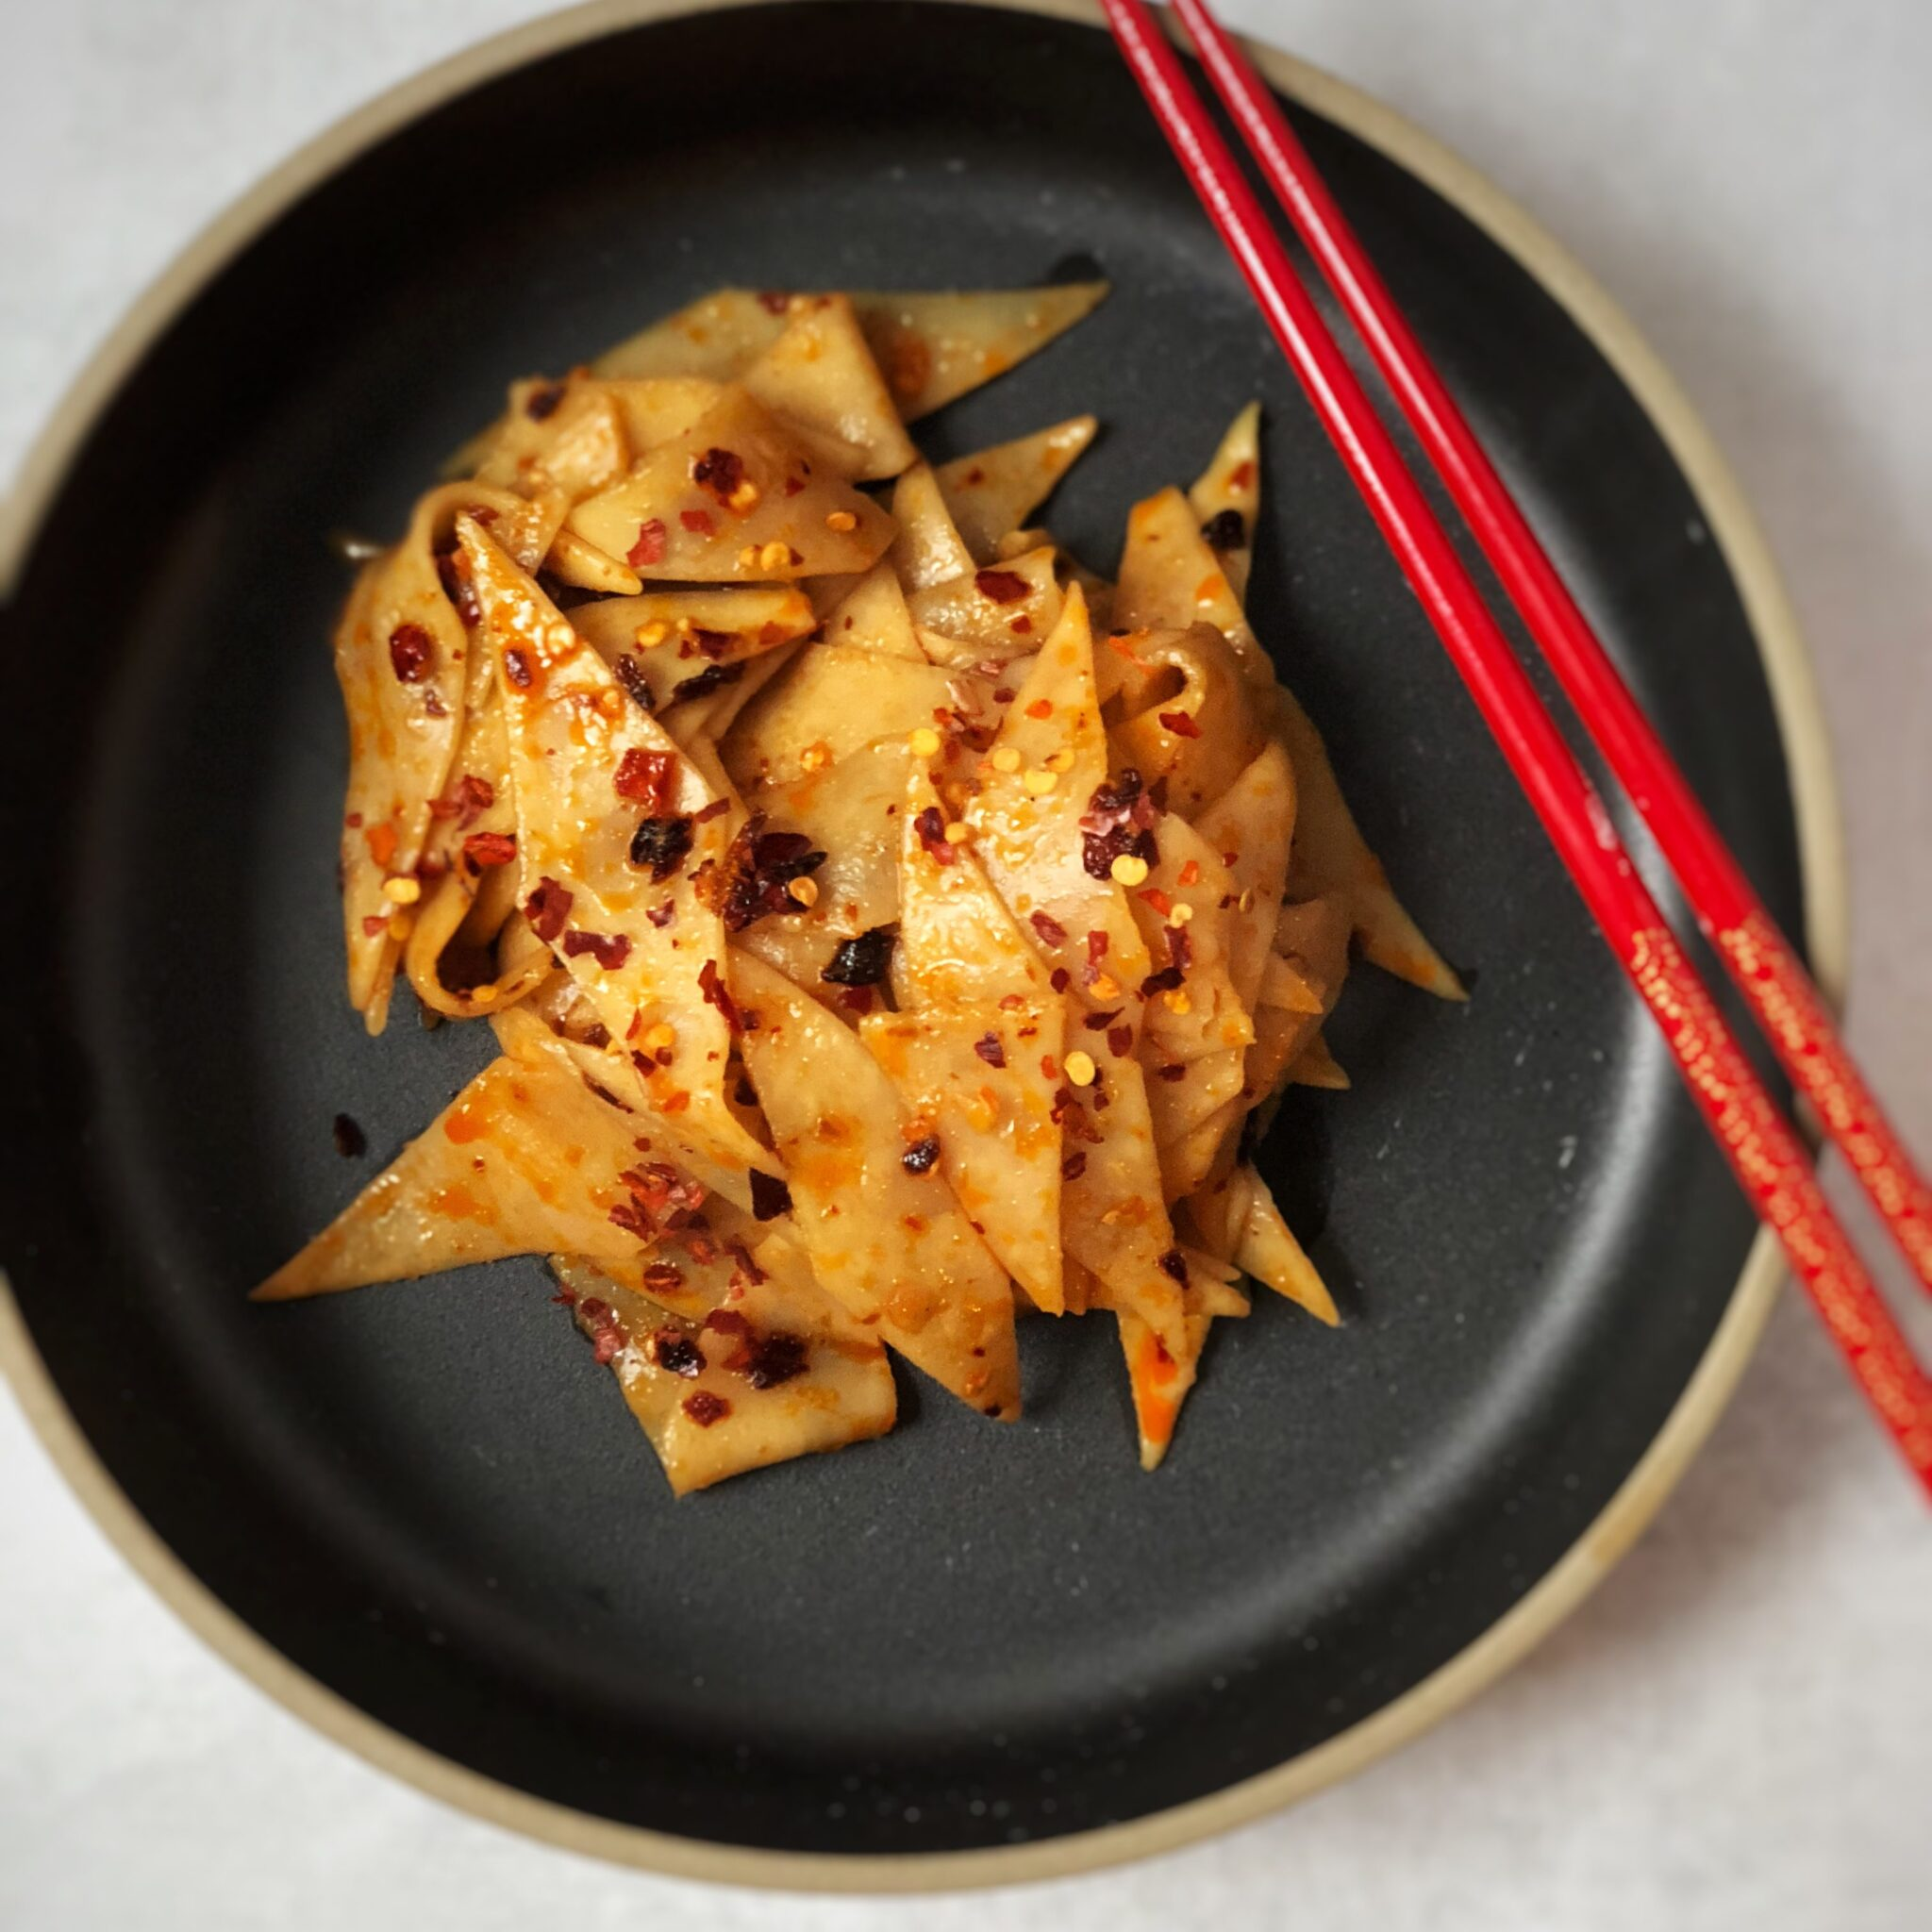 spicy noodles made with fresh noodles